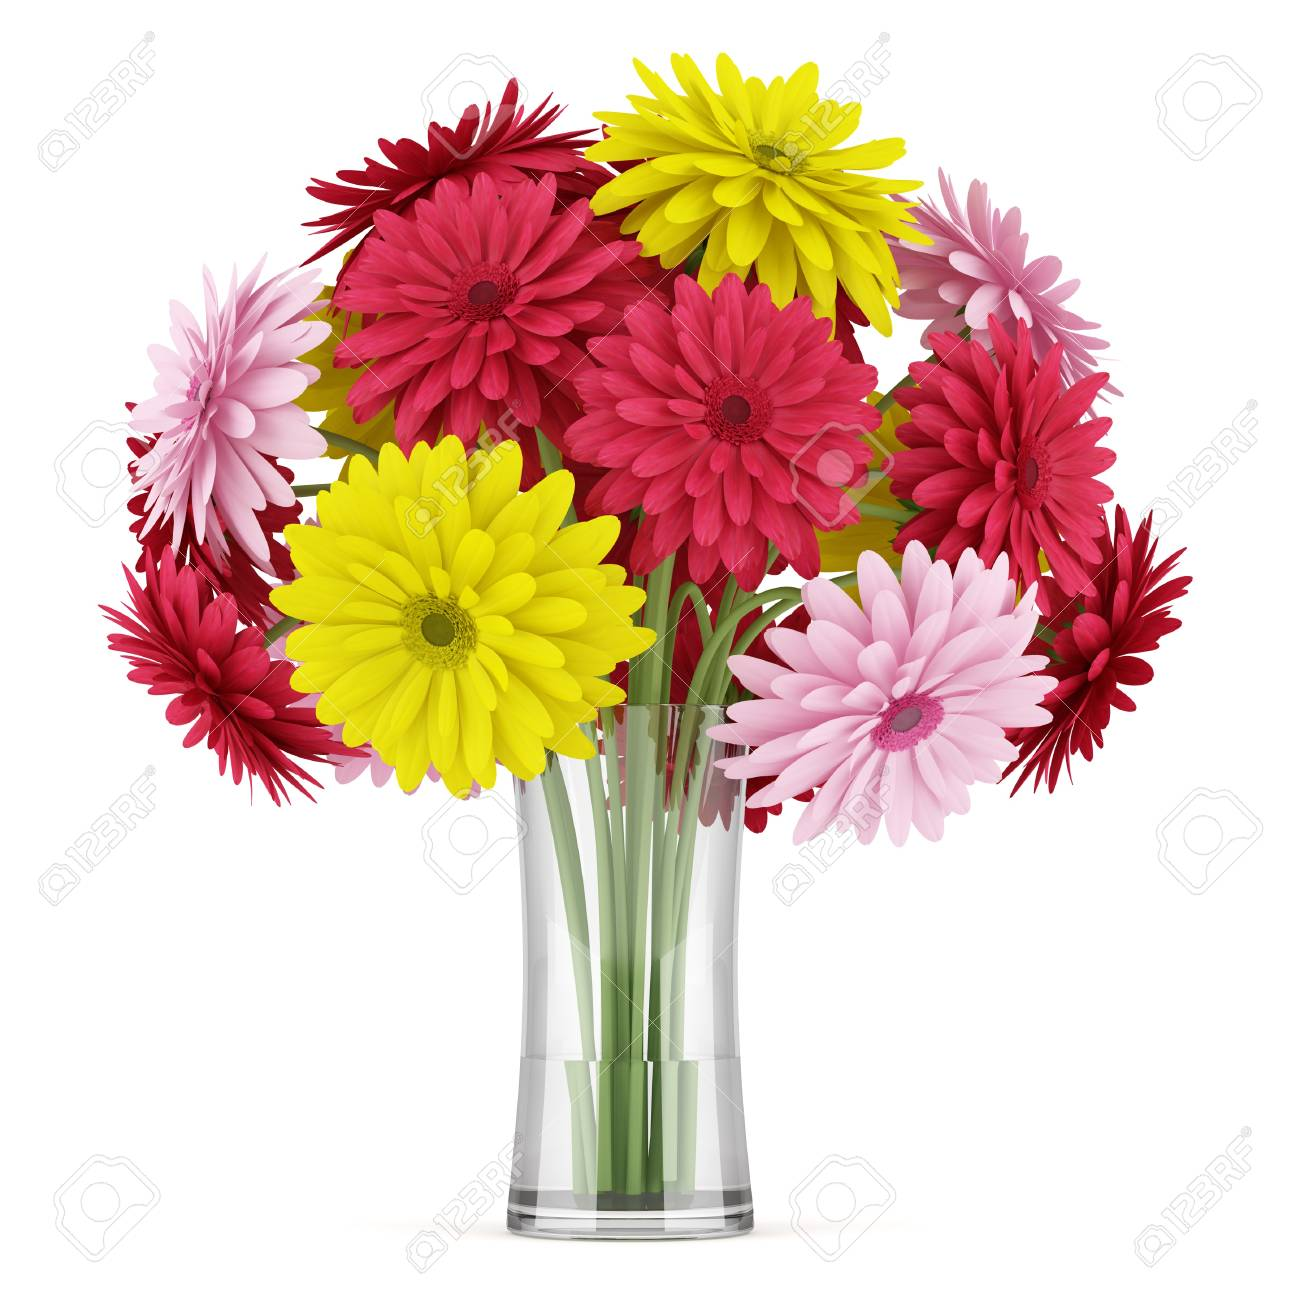 Bouquet Of Yellow Red And Pink Flowers In Vase Isolated On White